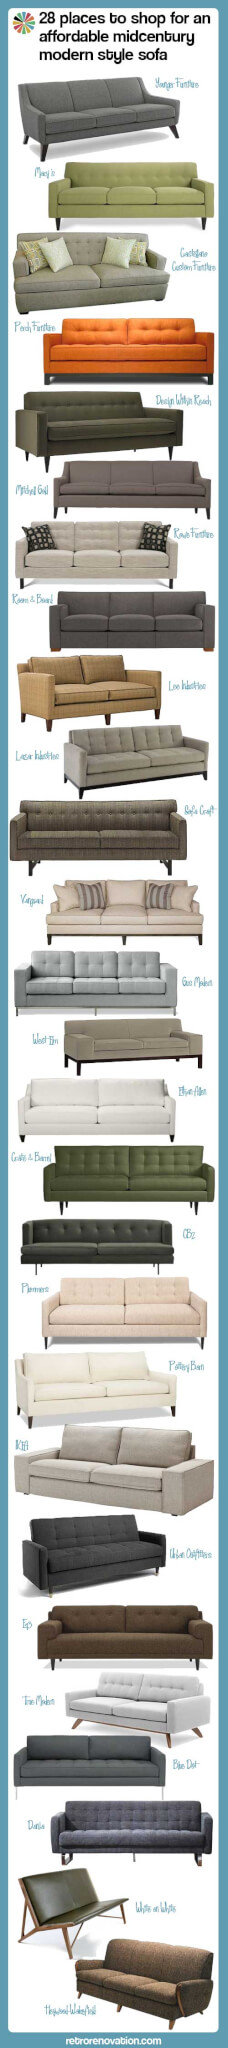 28 vintage reproduction sofas